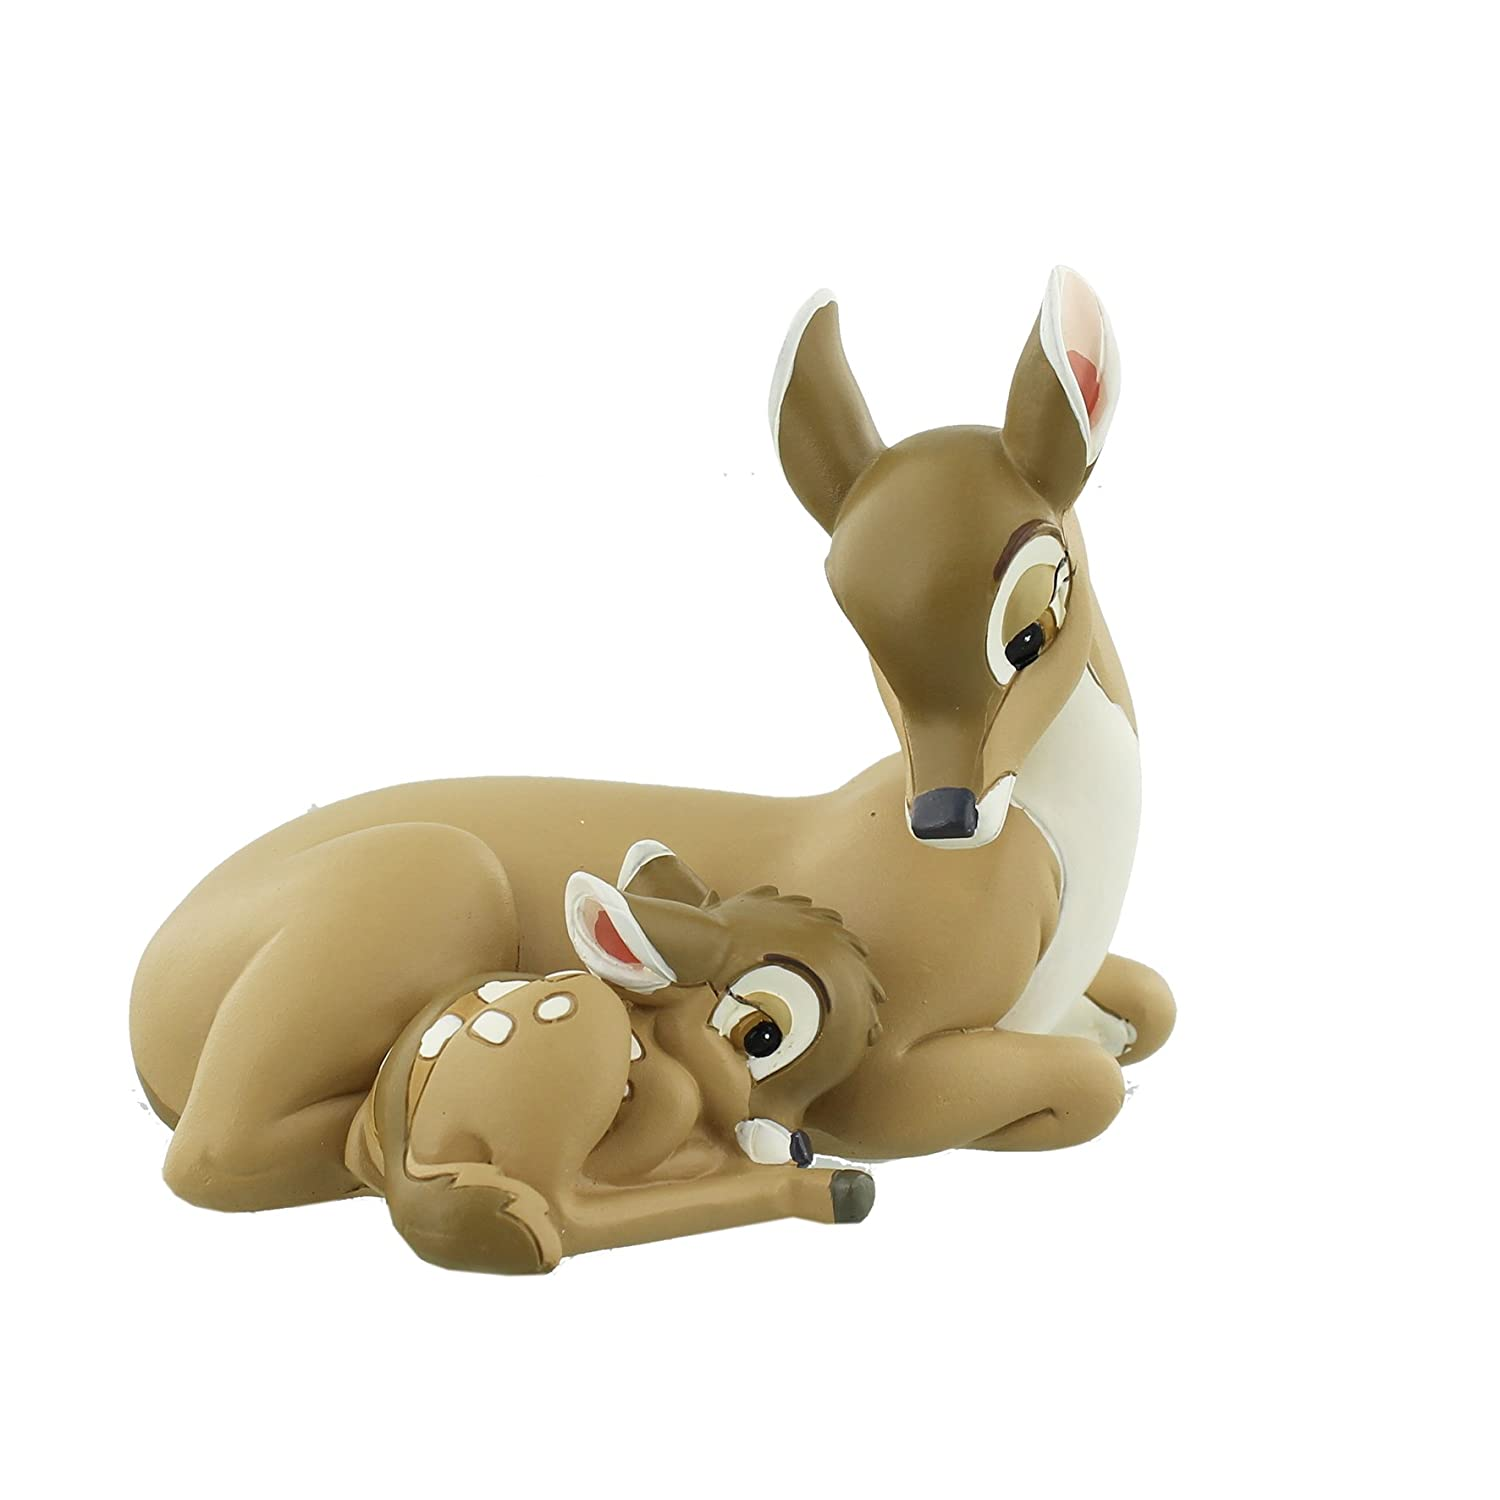 Disney Bambi and Mother Keepsake Figurine 11cm Magical Moments - My Little One DI182 Widdop Bingham